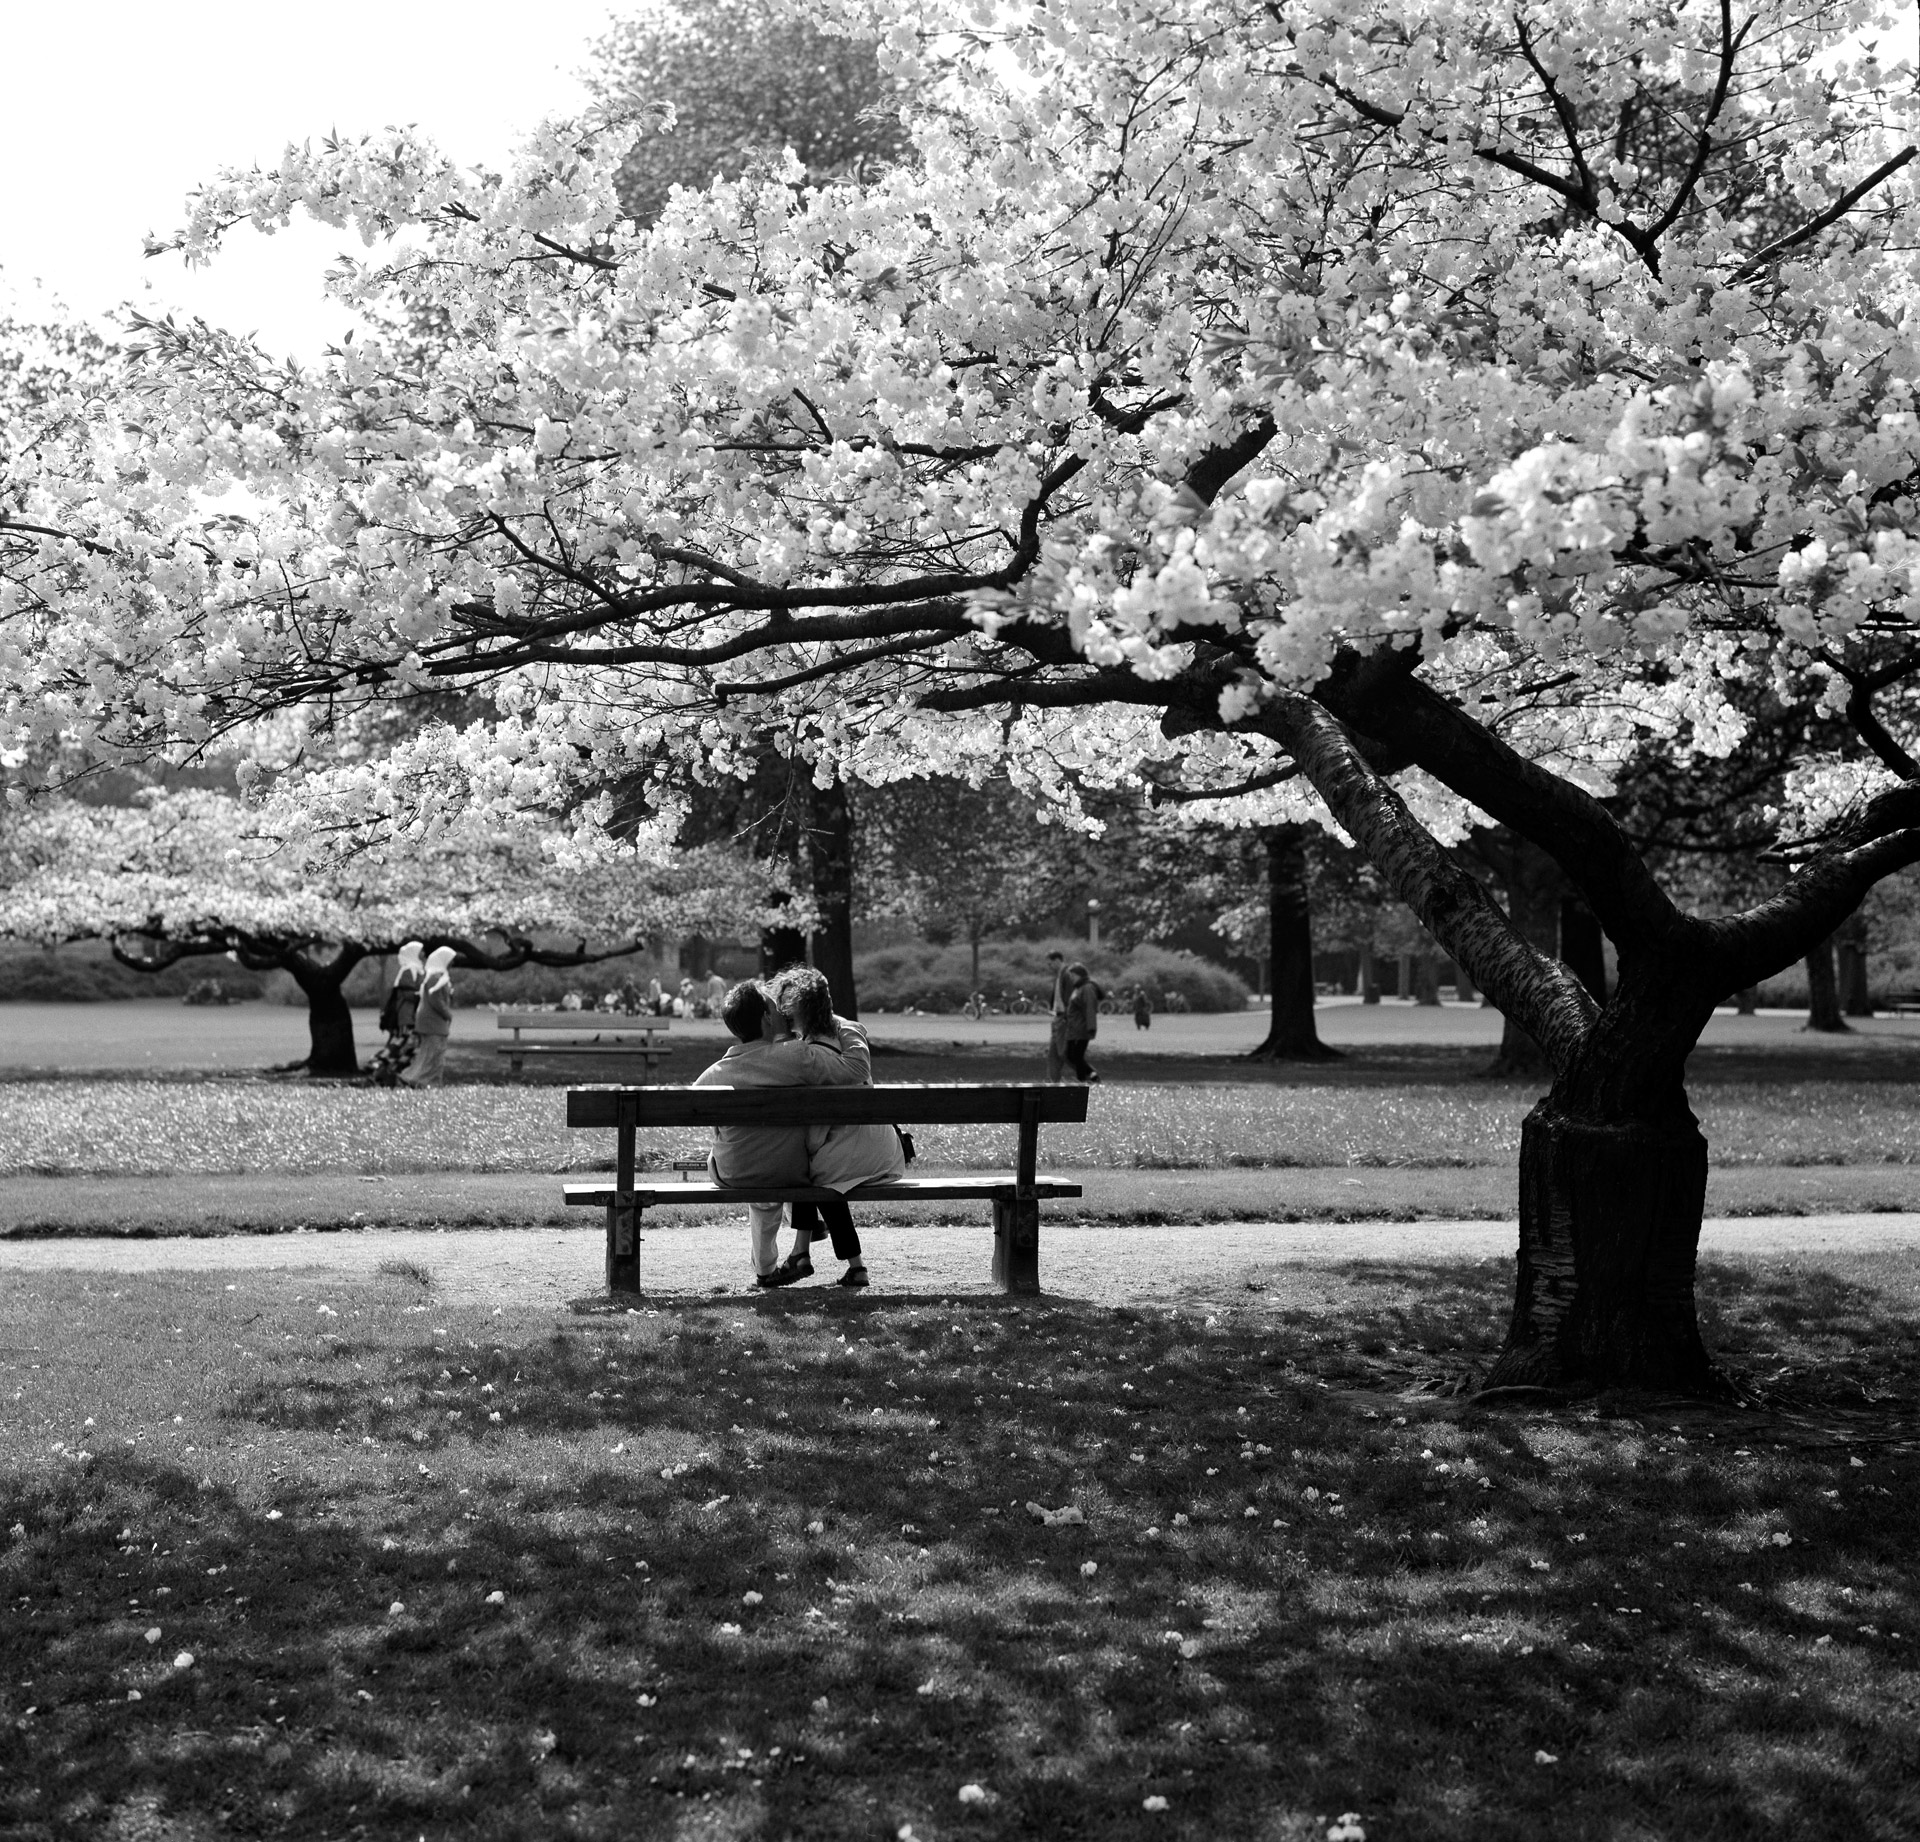 A couple on a bench kissing under flowering Cherry trees in Kgs. Have in Copenhagen